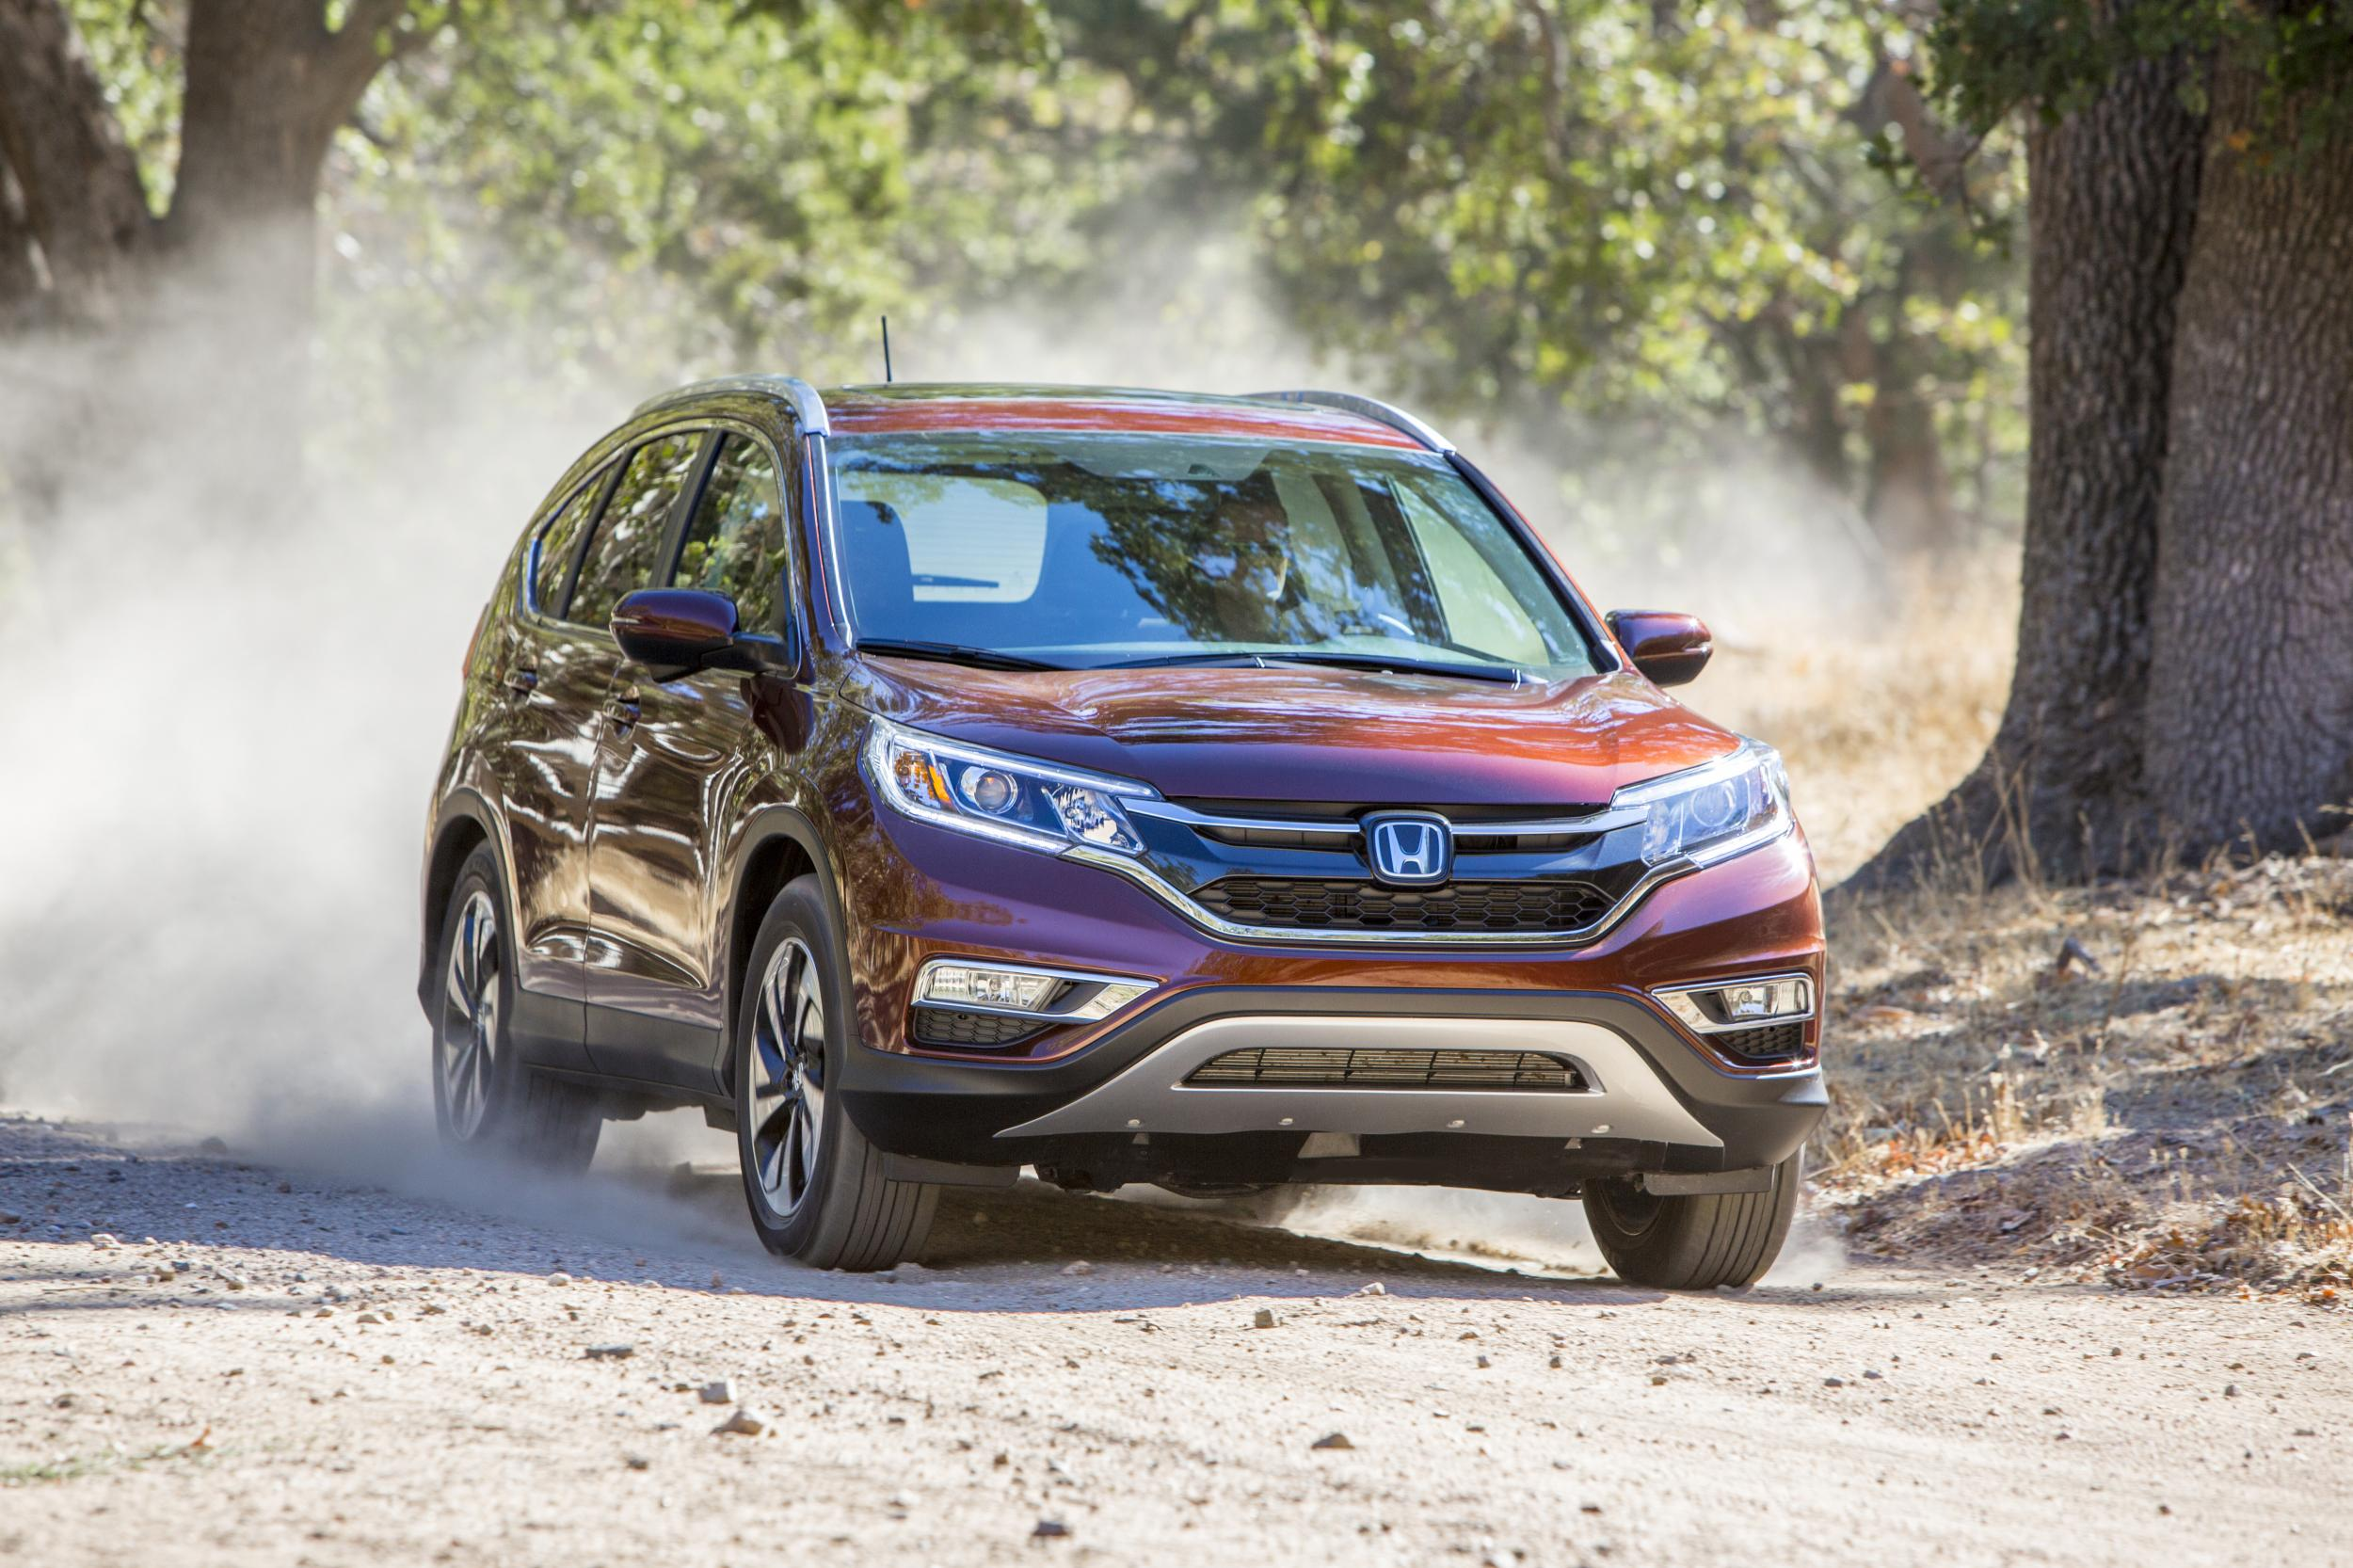 2015 Honda CR-V Facelift launched in US